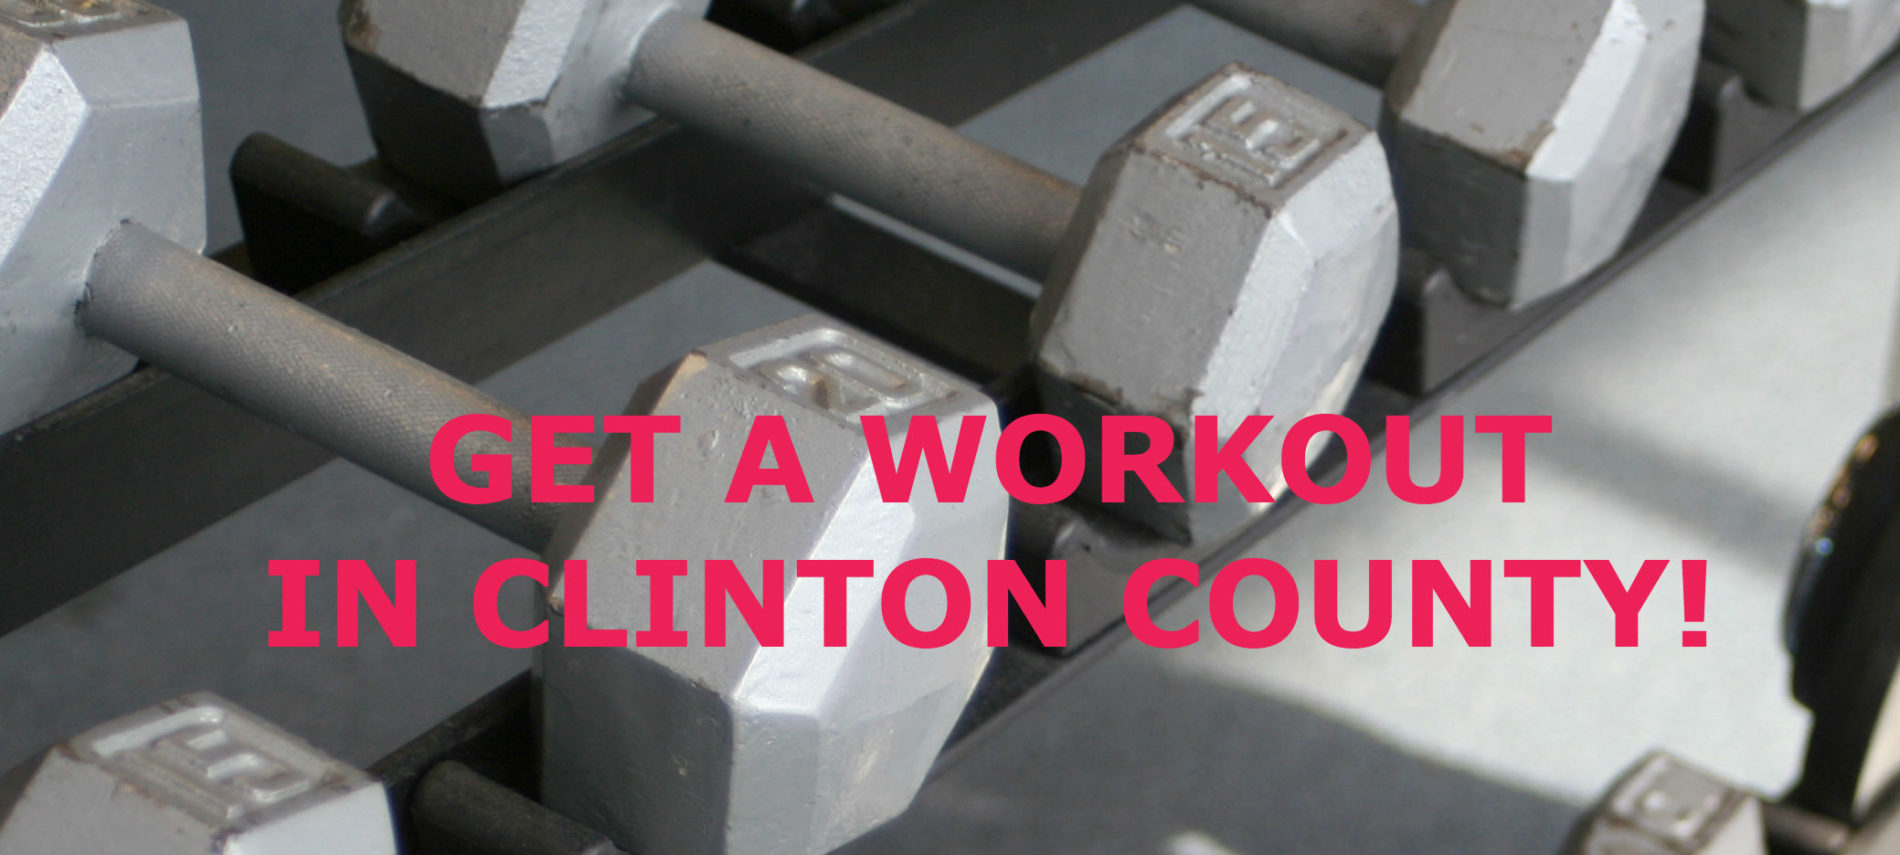 Illinois clinton county aviston - Photo Of Dumbbells With Title Get A Workout In Clinton County